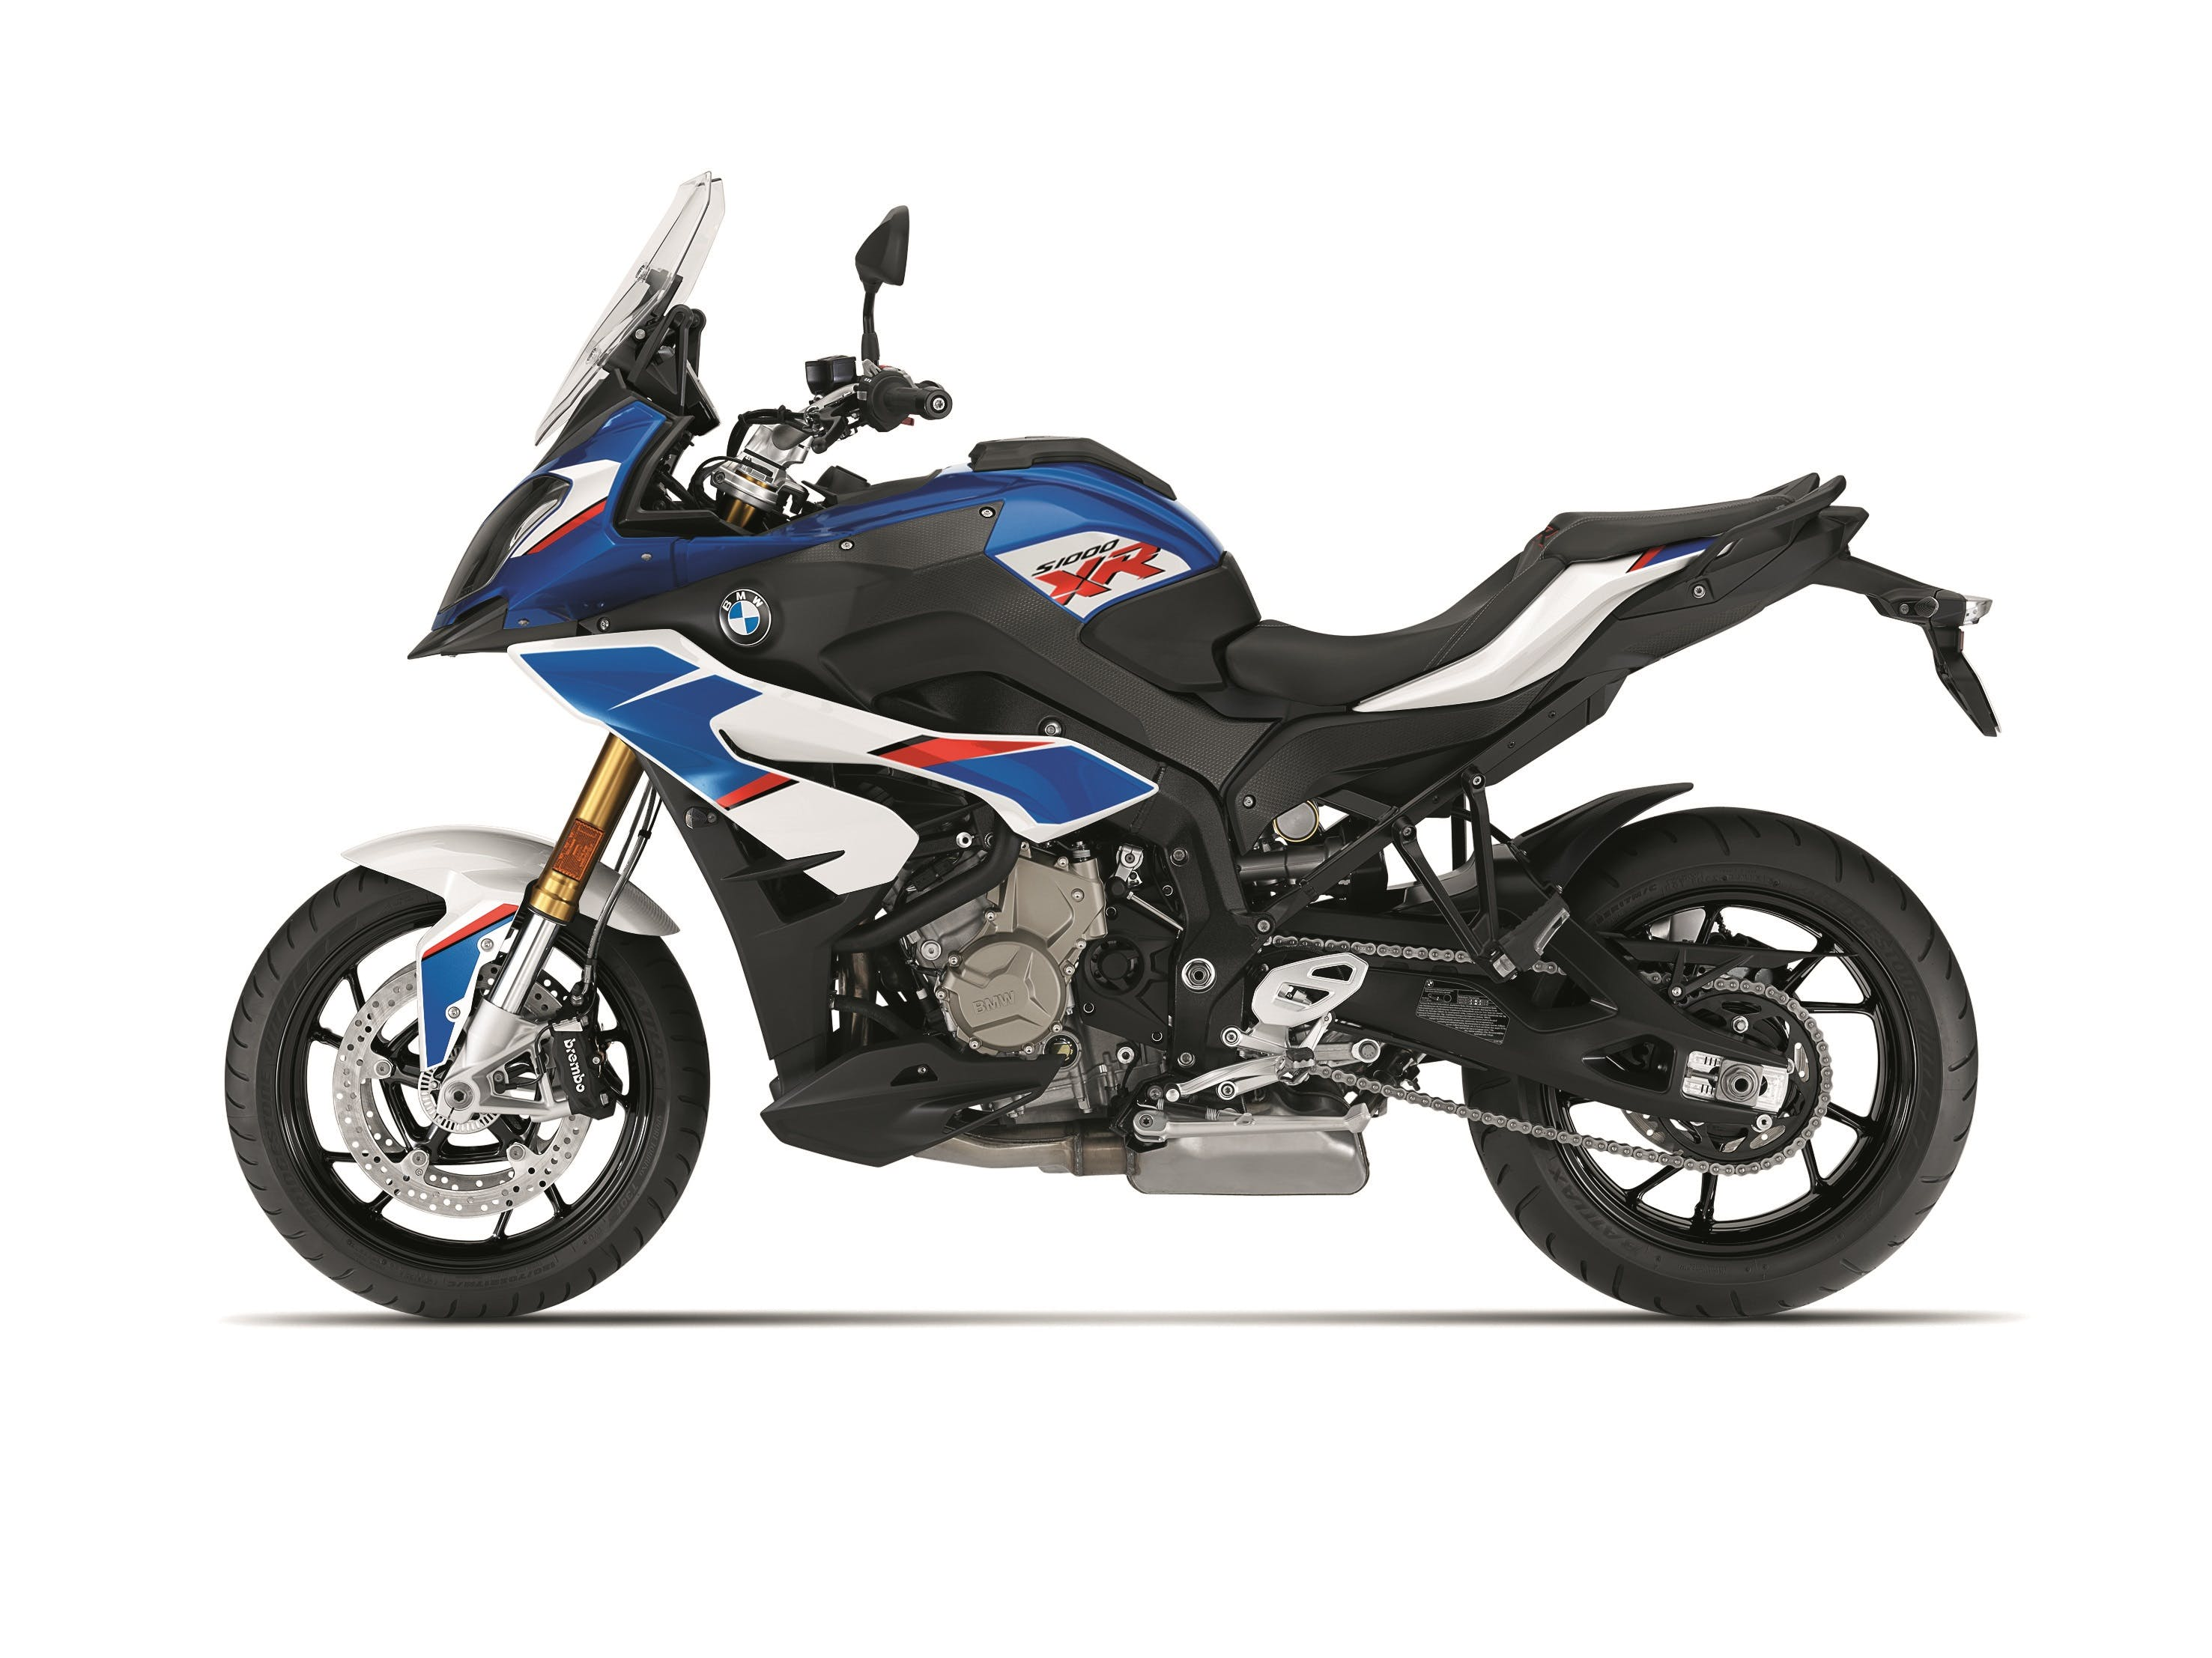 BMW S 1000 XR HP in motorsport light white, racing blue metallic and racing red colour